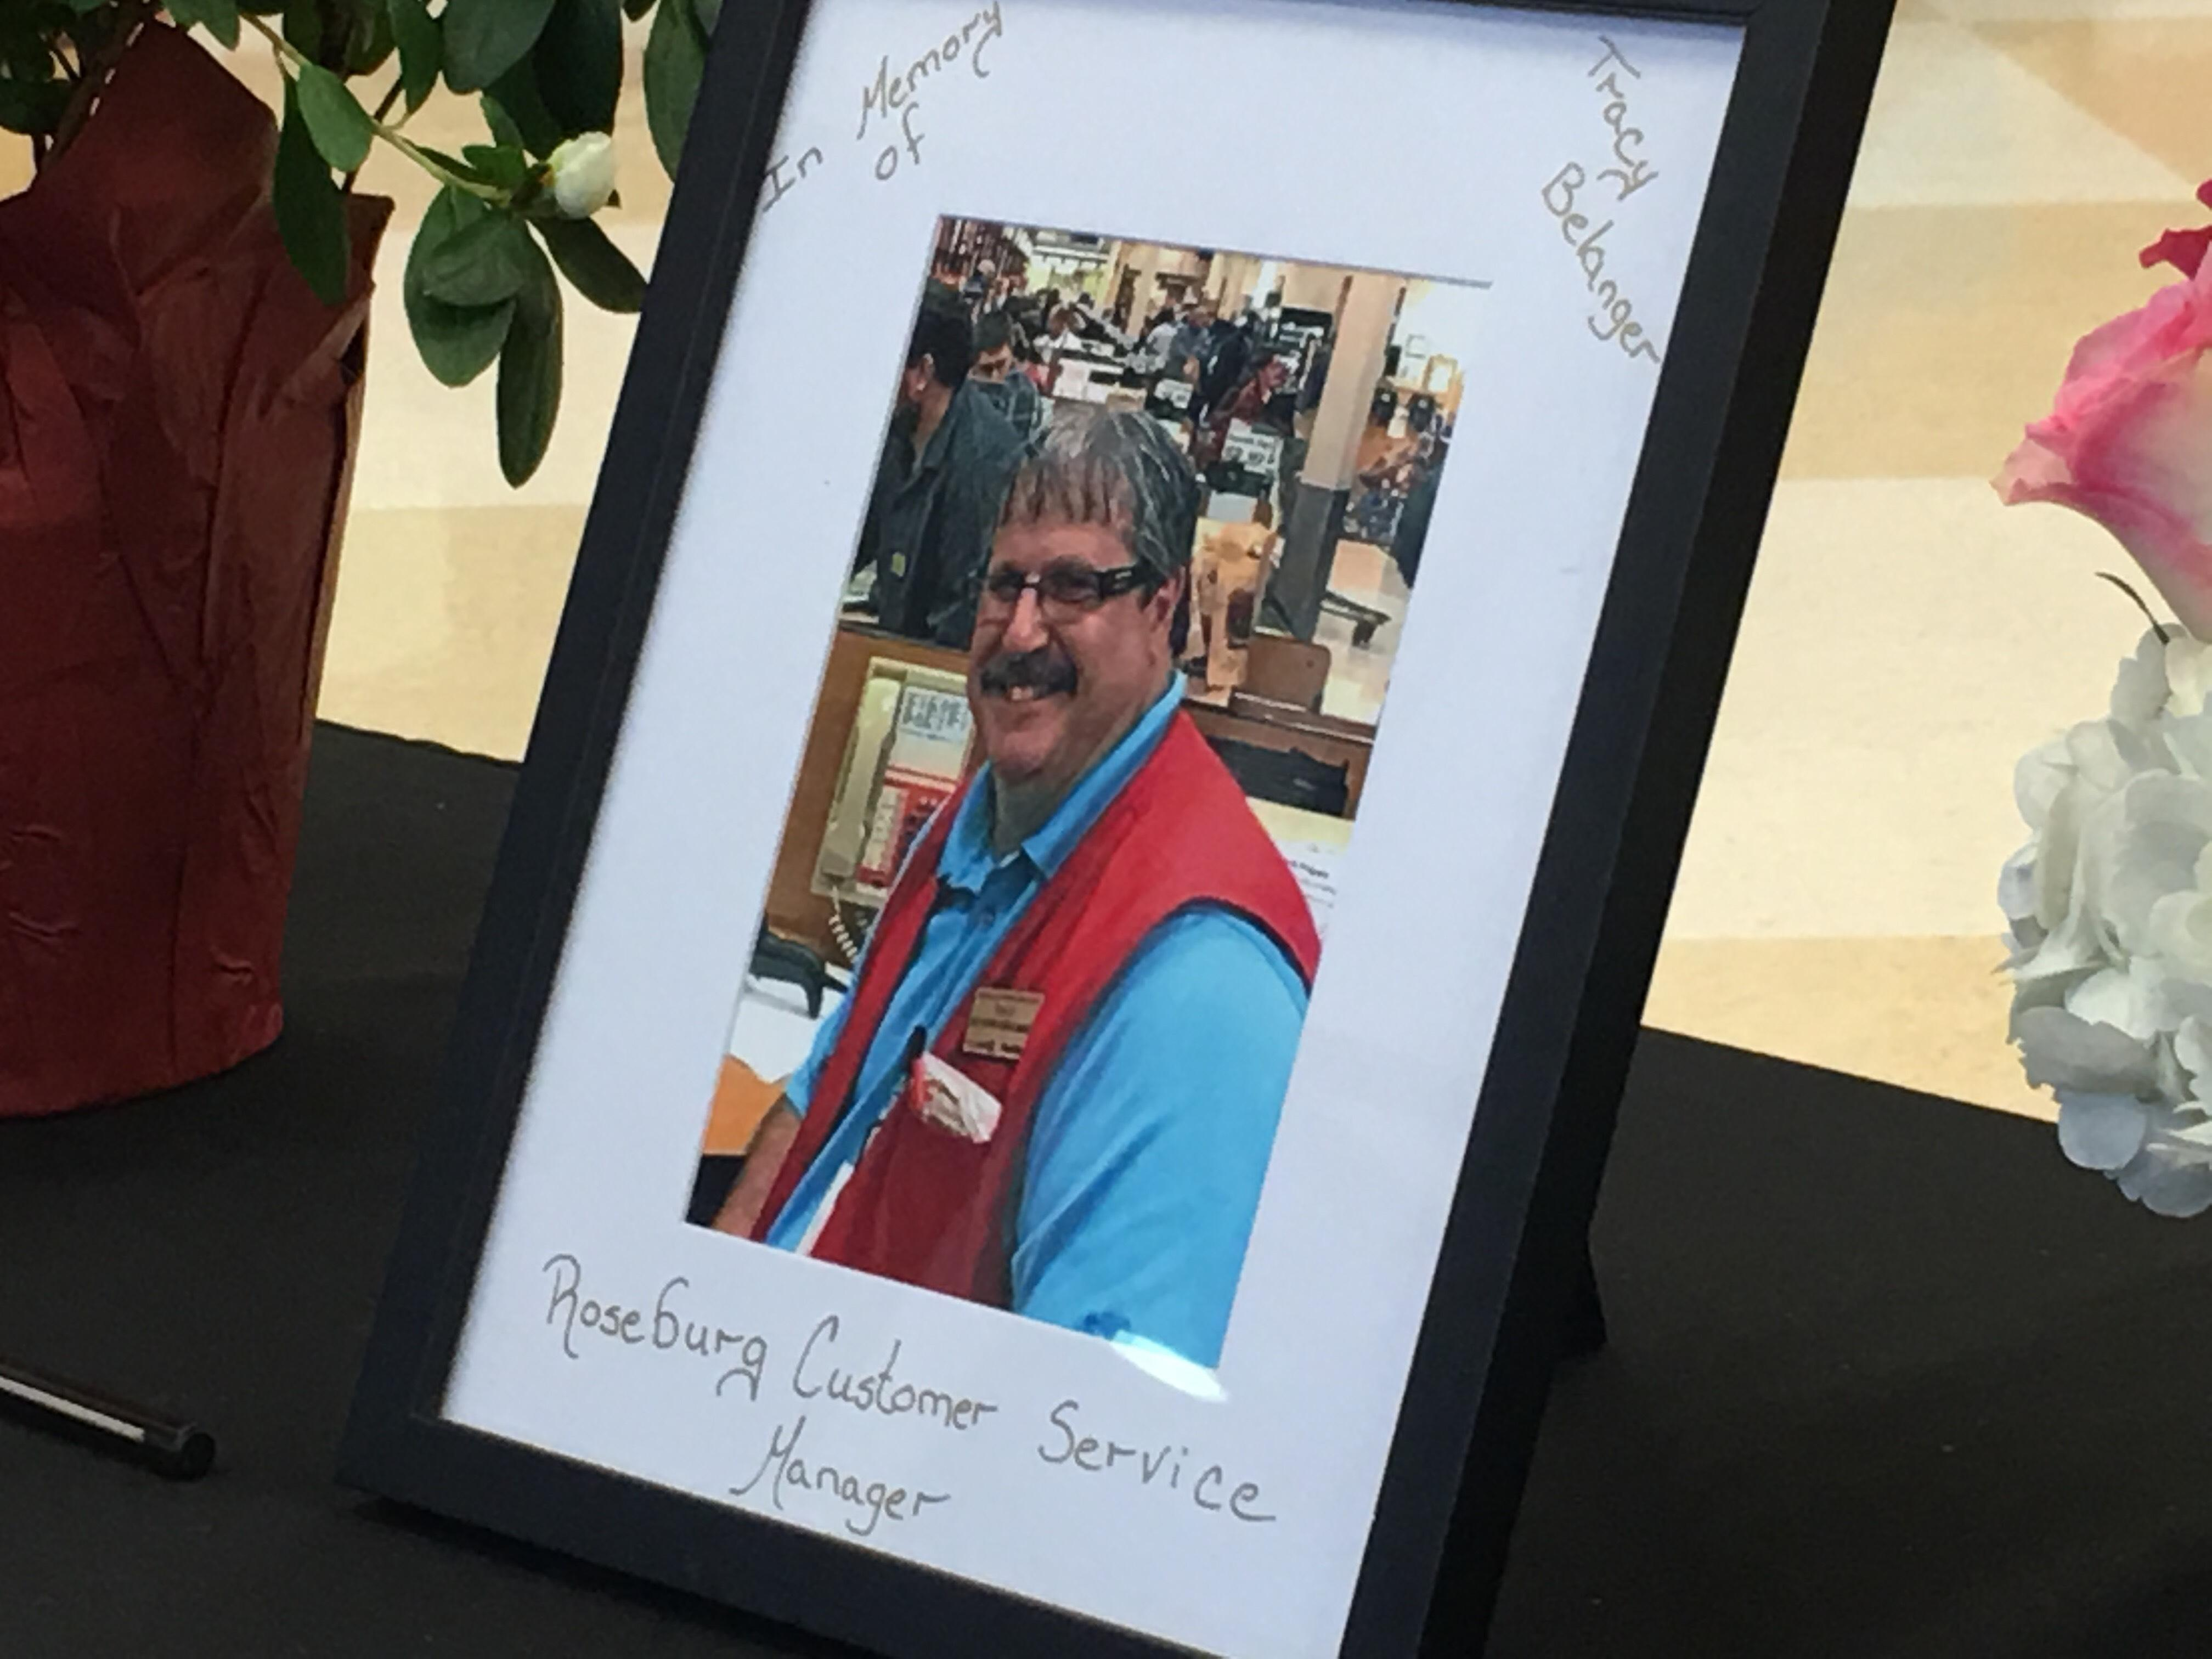 The Roseburg community is mourning the passing of a local store manager who will be remembered as a hero.